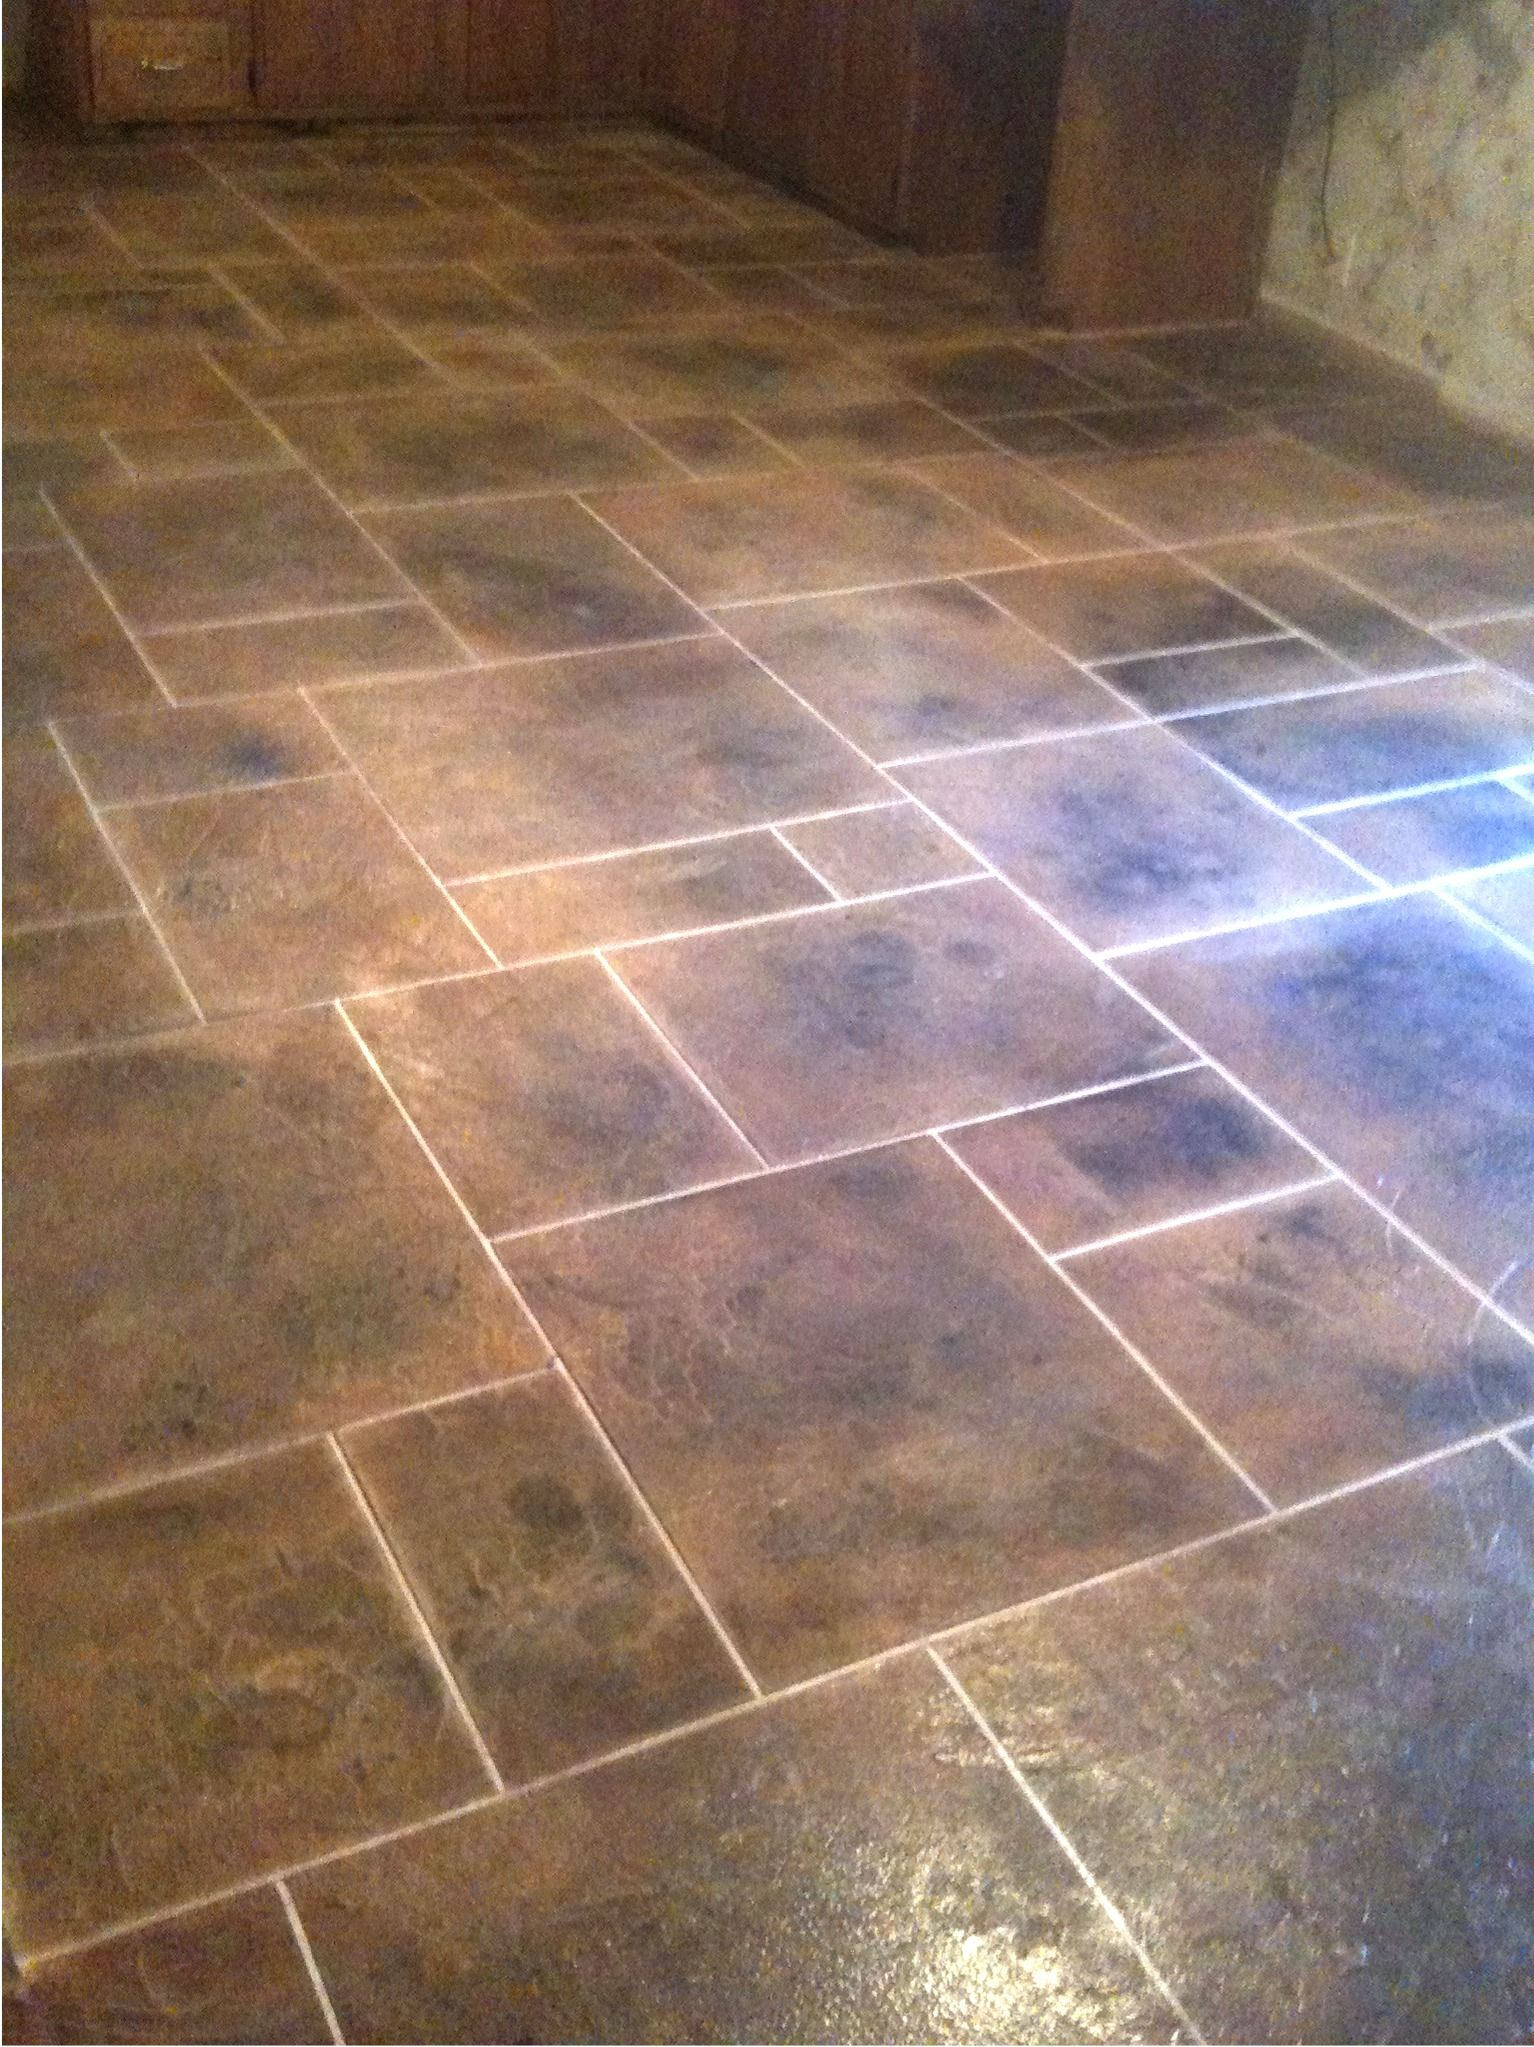 Kitchen floor tile patterns concrete overlay random for Large vinyl floor tiles